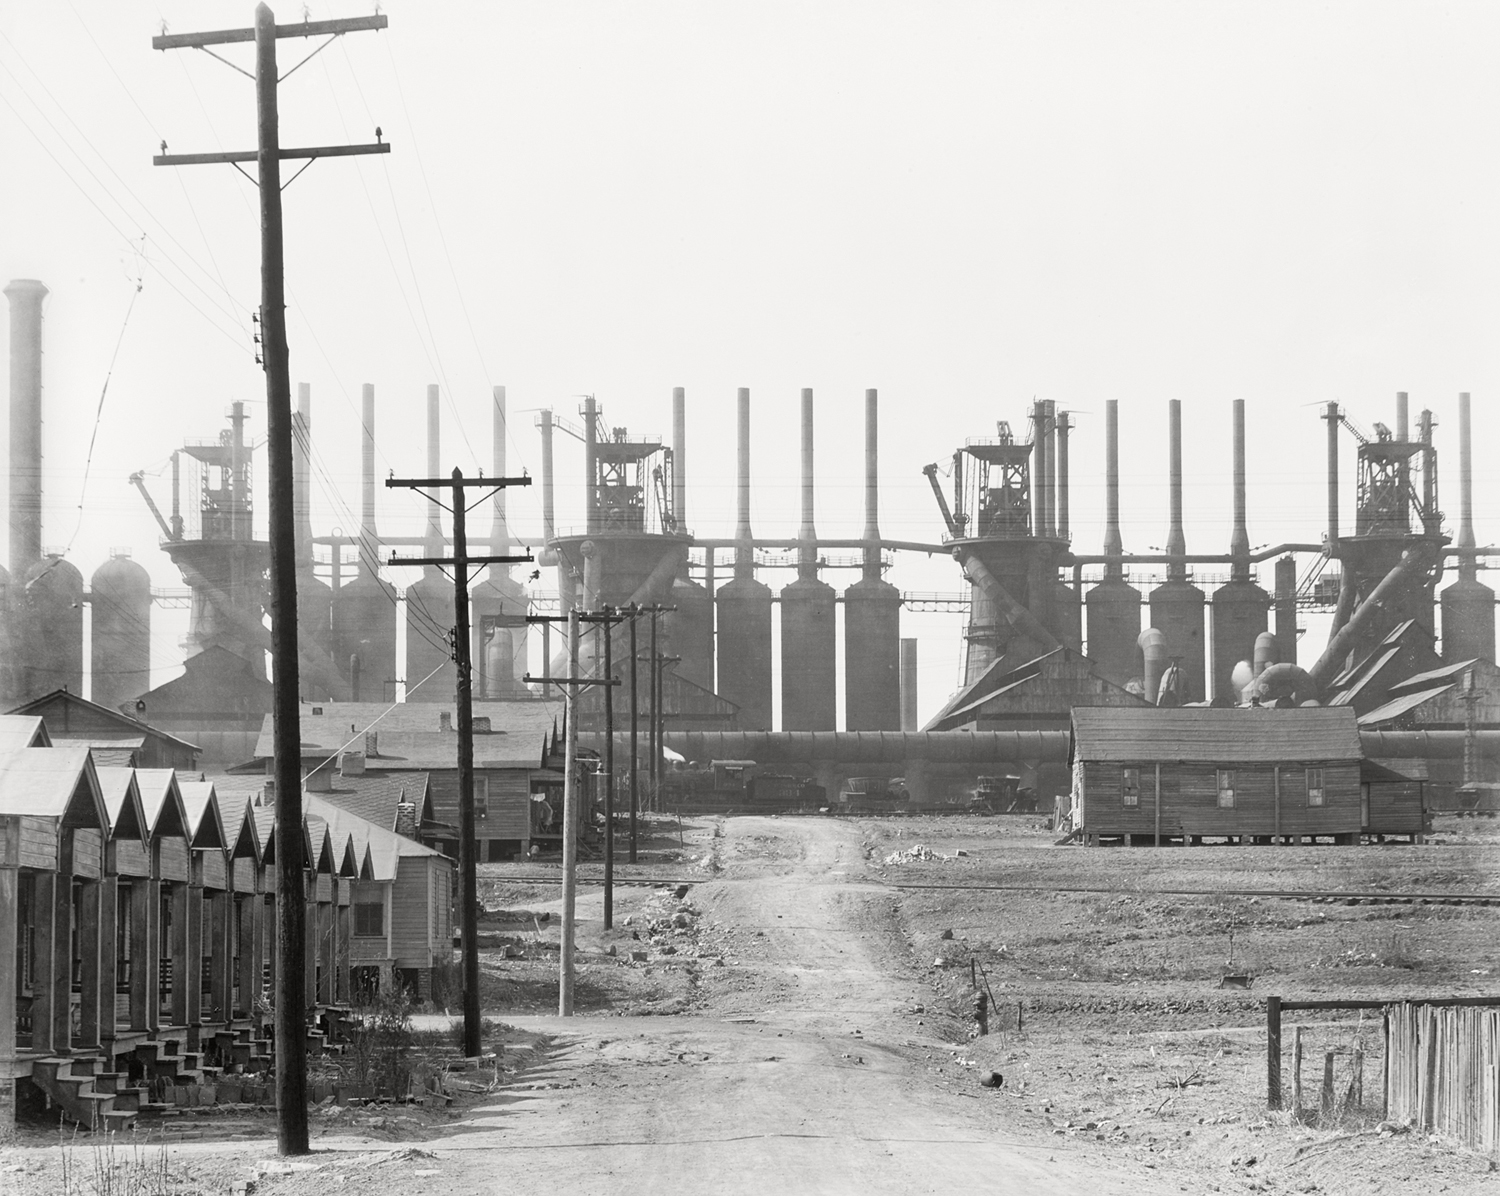 Birmingham Steel Mill And Workers' House, 1936